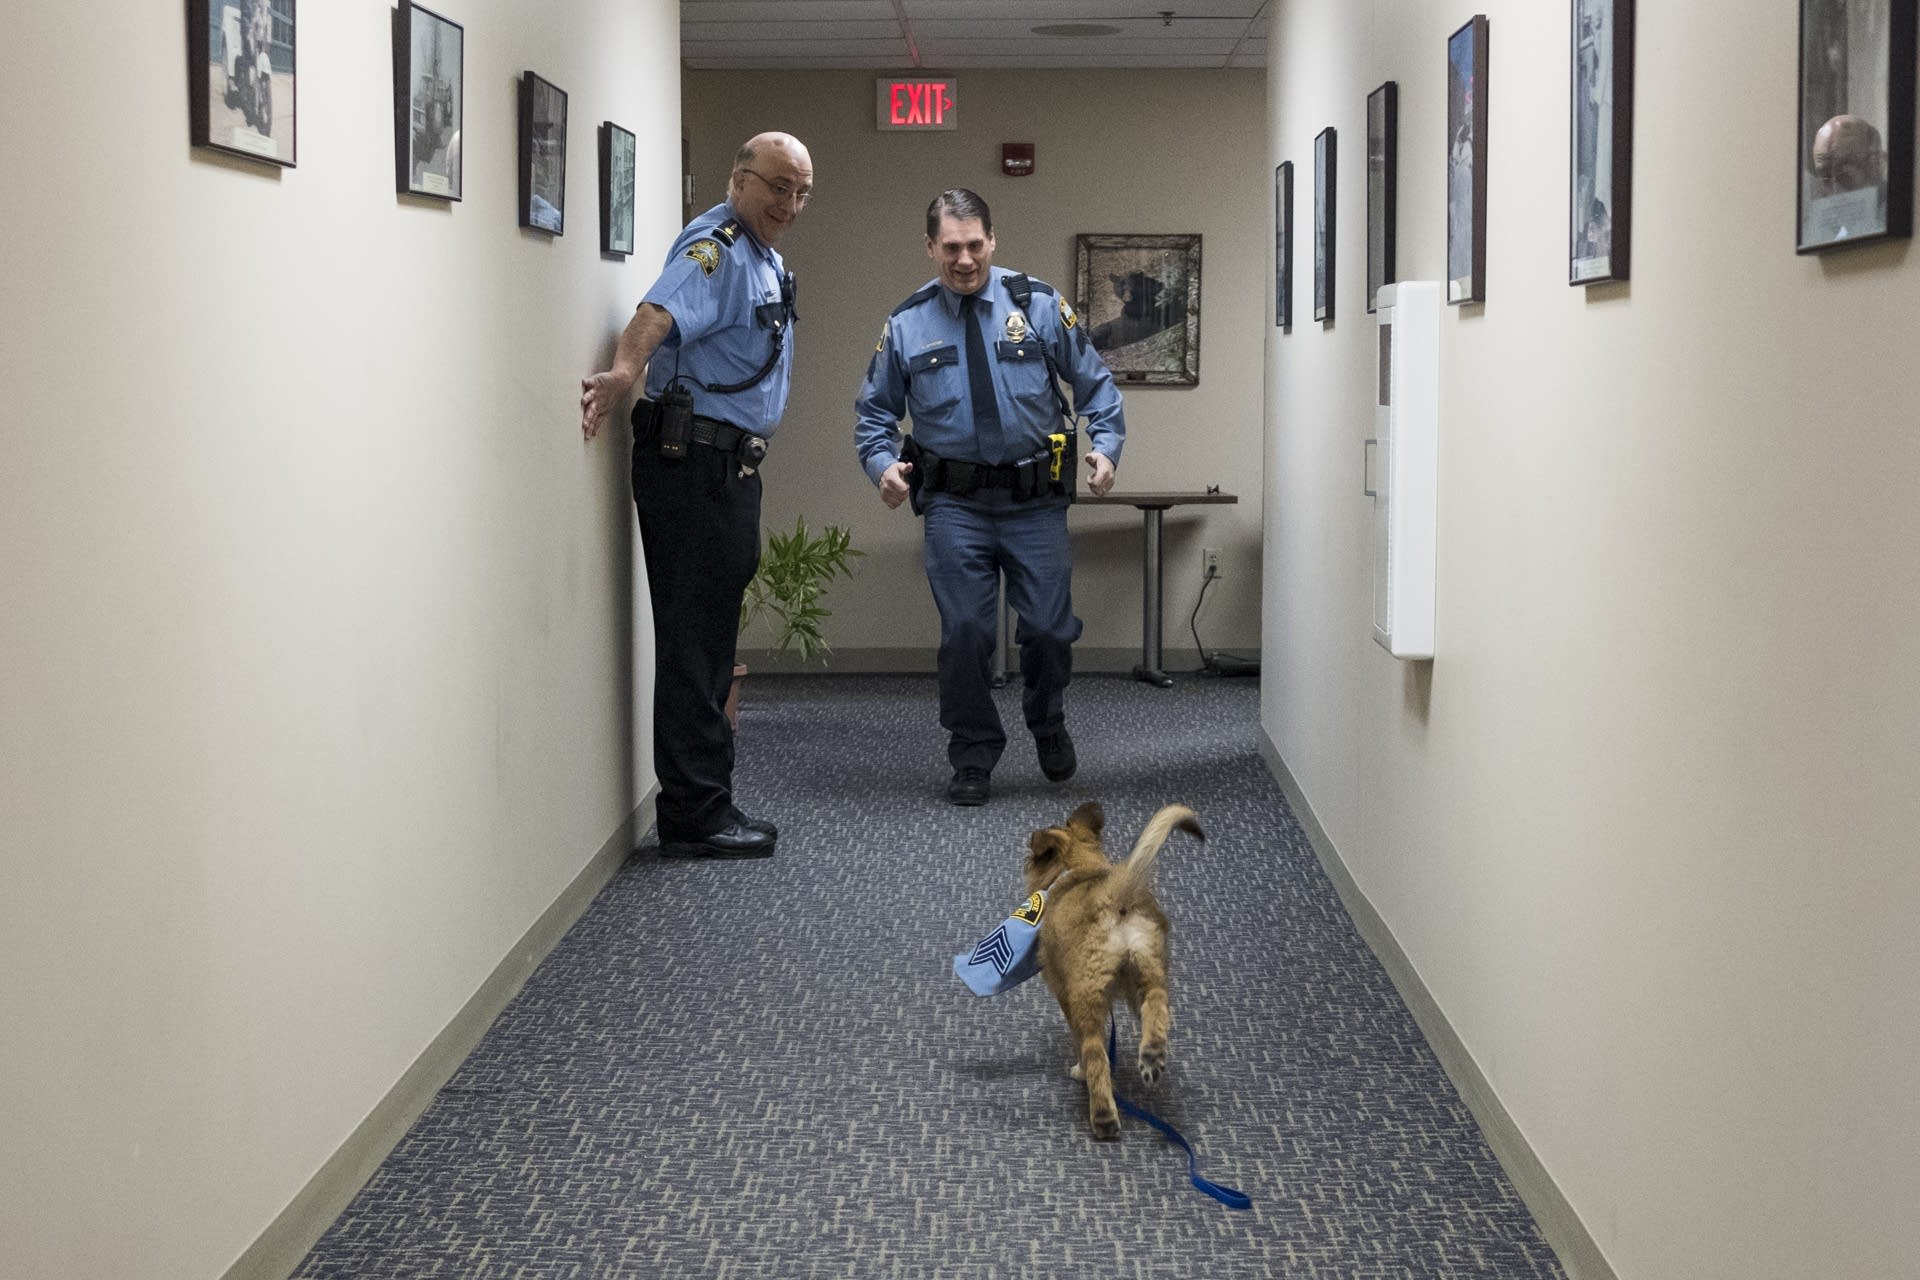 Sergeant Fuzz chases Sergeant Mike Ernster.